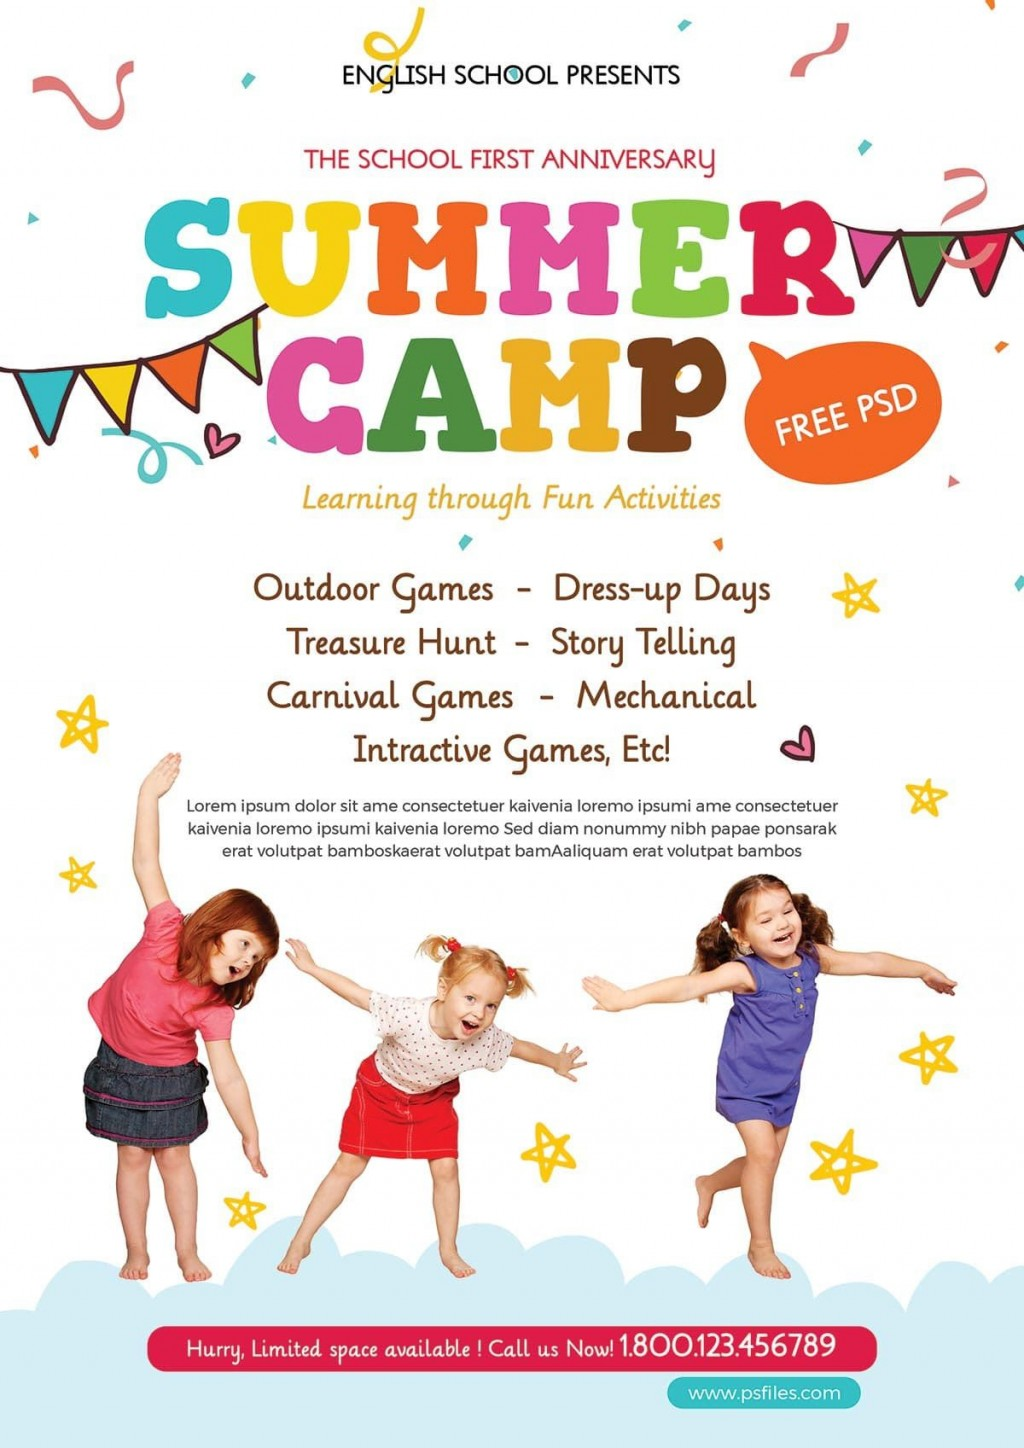 004 Awful Summer Camp Flyer Template Image  Day Microsoft Word BackgroundLarge